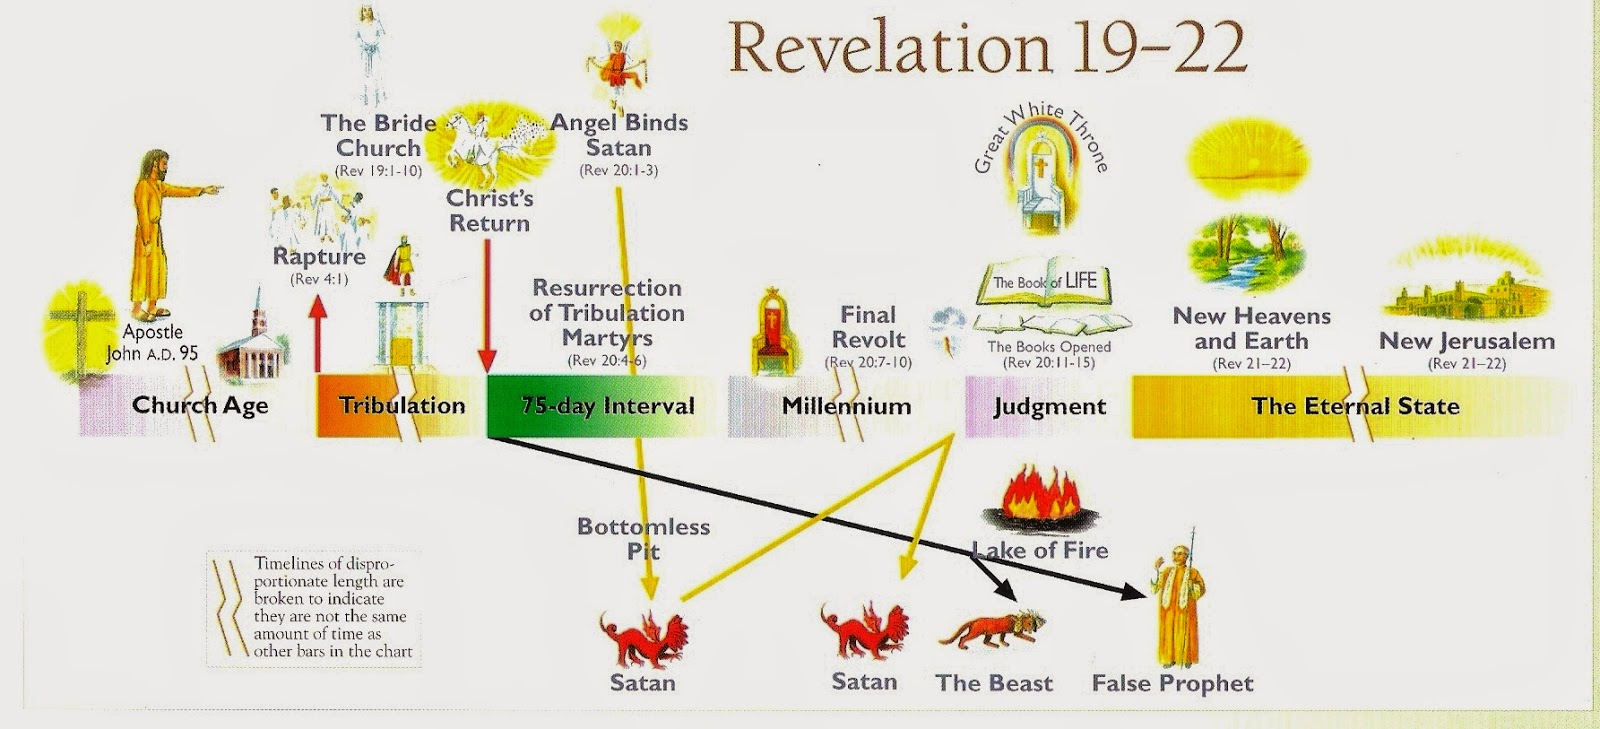 1000+ images about REVELATION on Pinterest | The seven ...